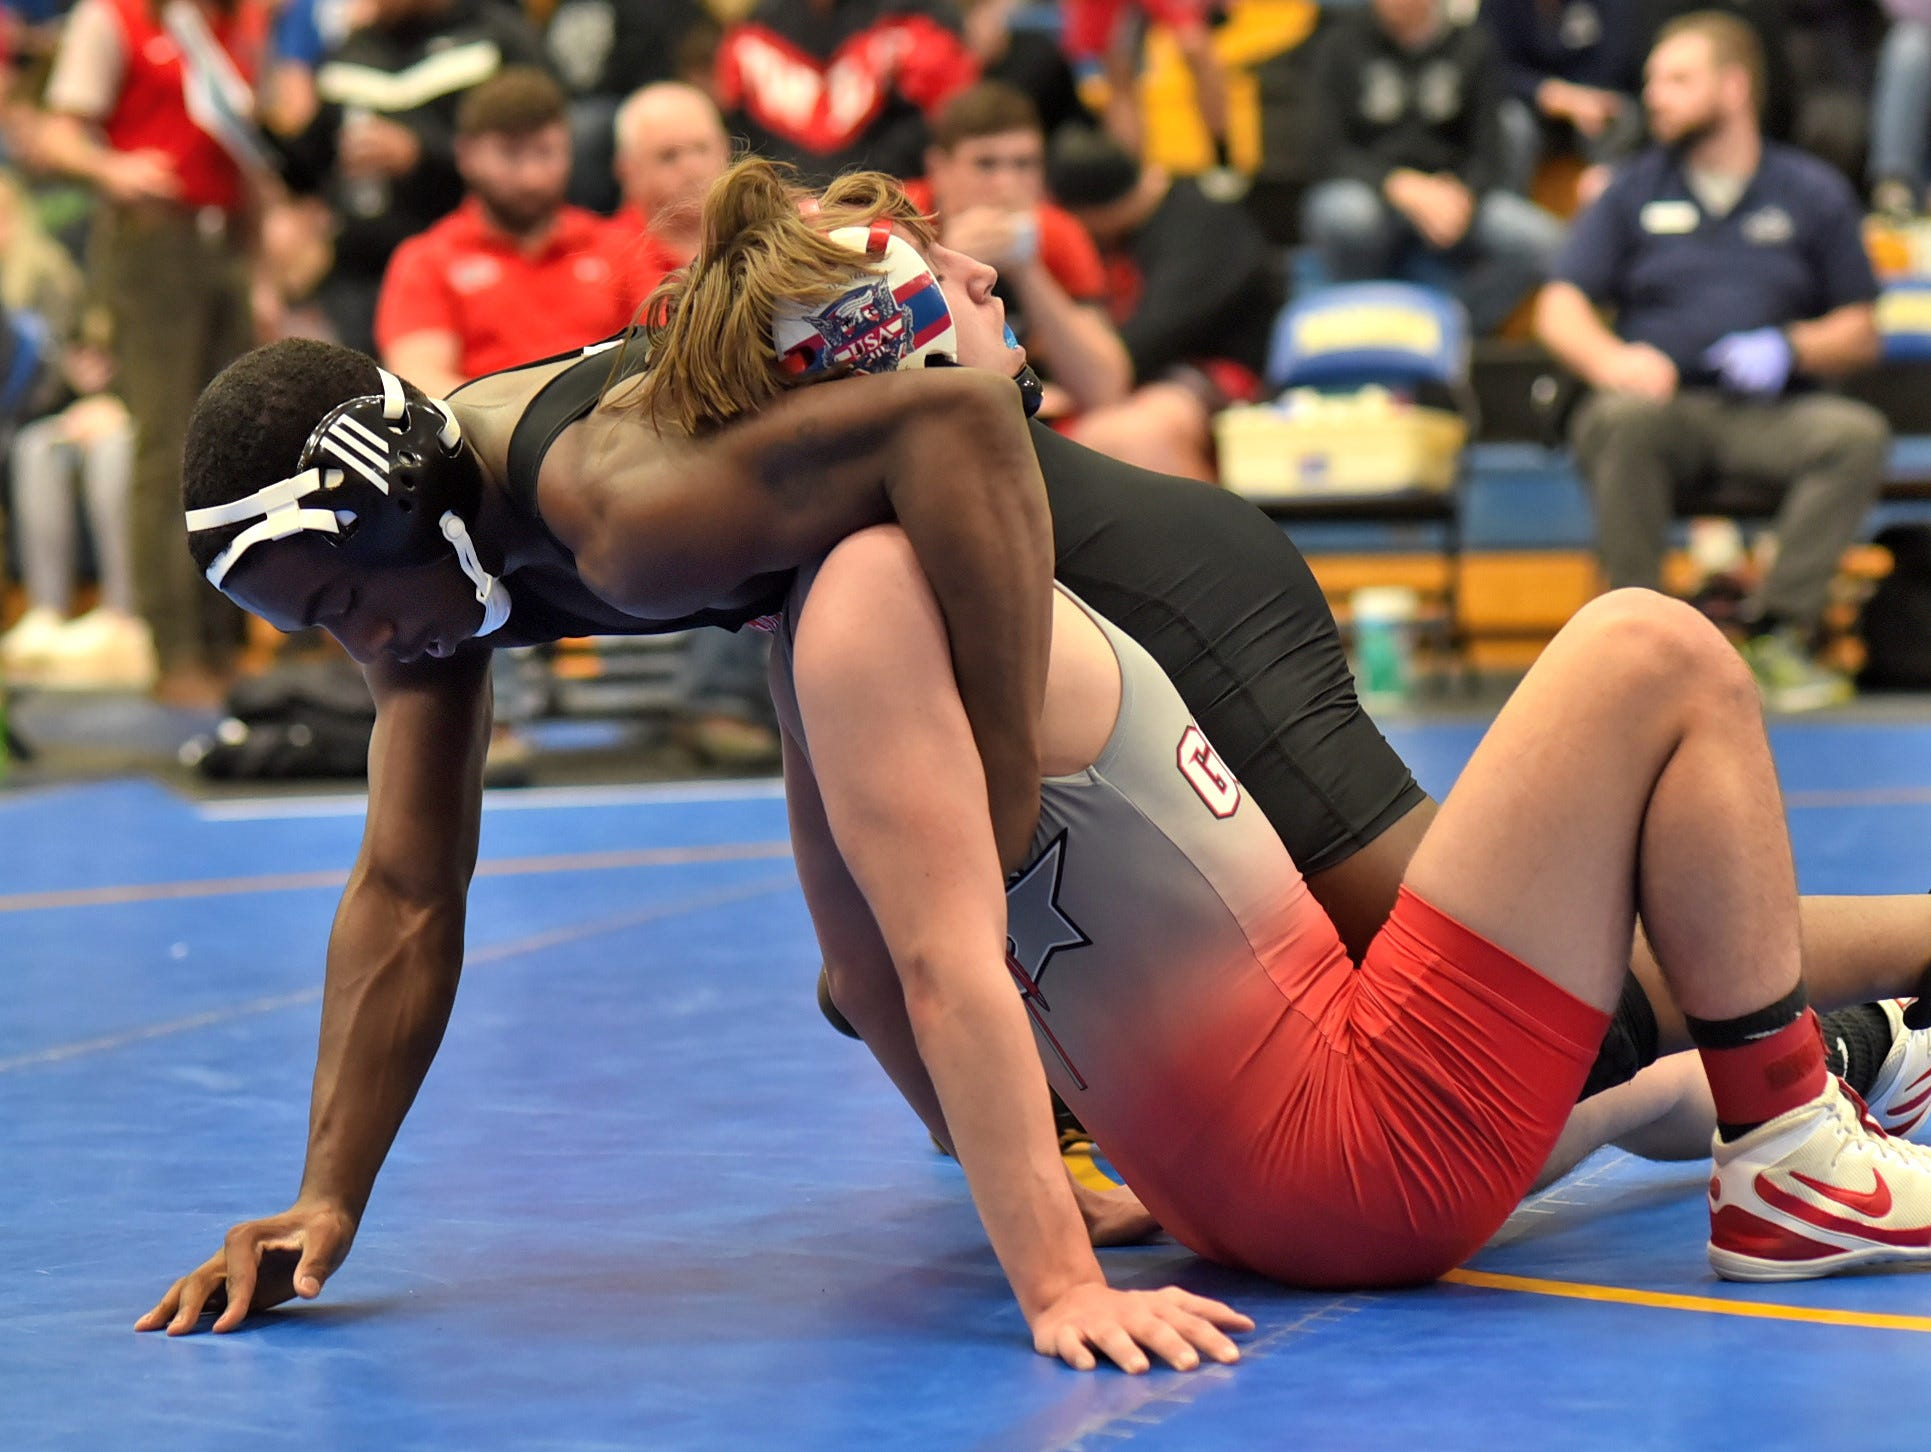 Roman McCauley of Withrow takes down Dale King of Goshen for a first round pinfall in the 160 lbs. class at the Bob Kearns Madeira Invitational, January 4, 2019.